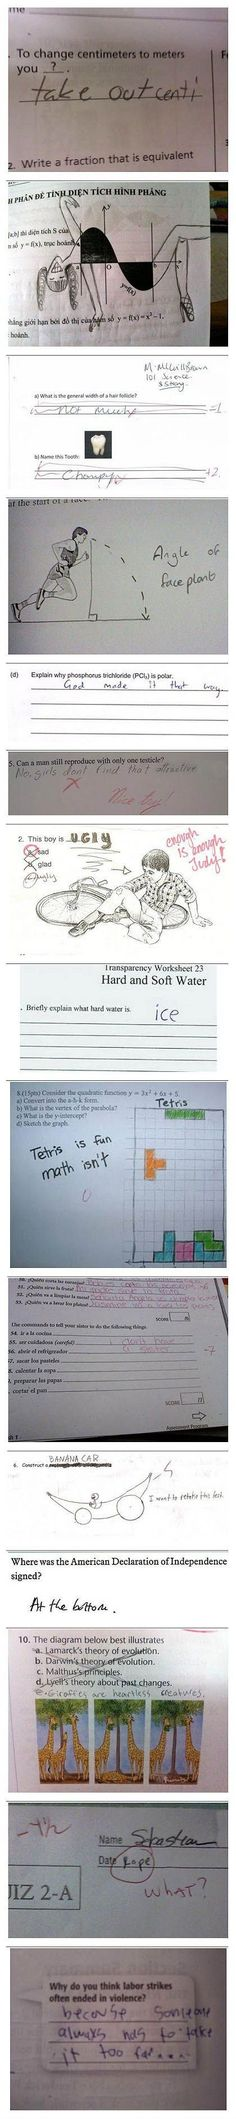 I would so give these students A's for effort! LoL.